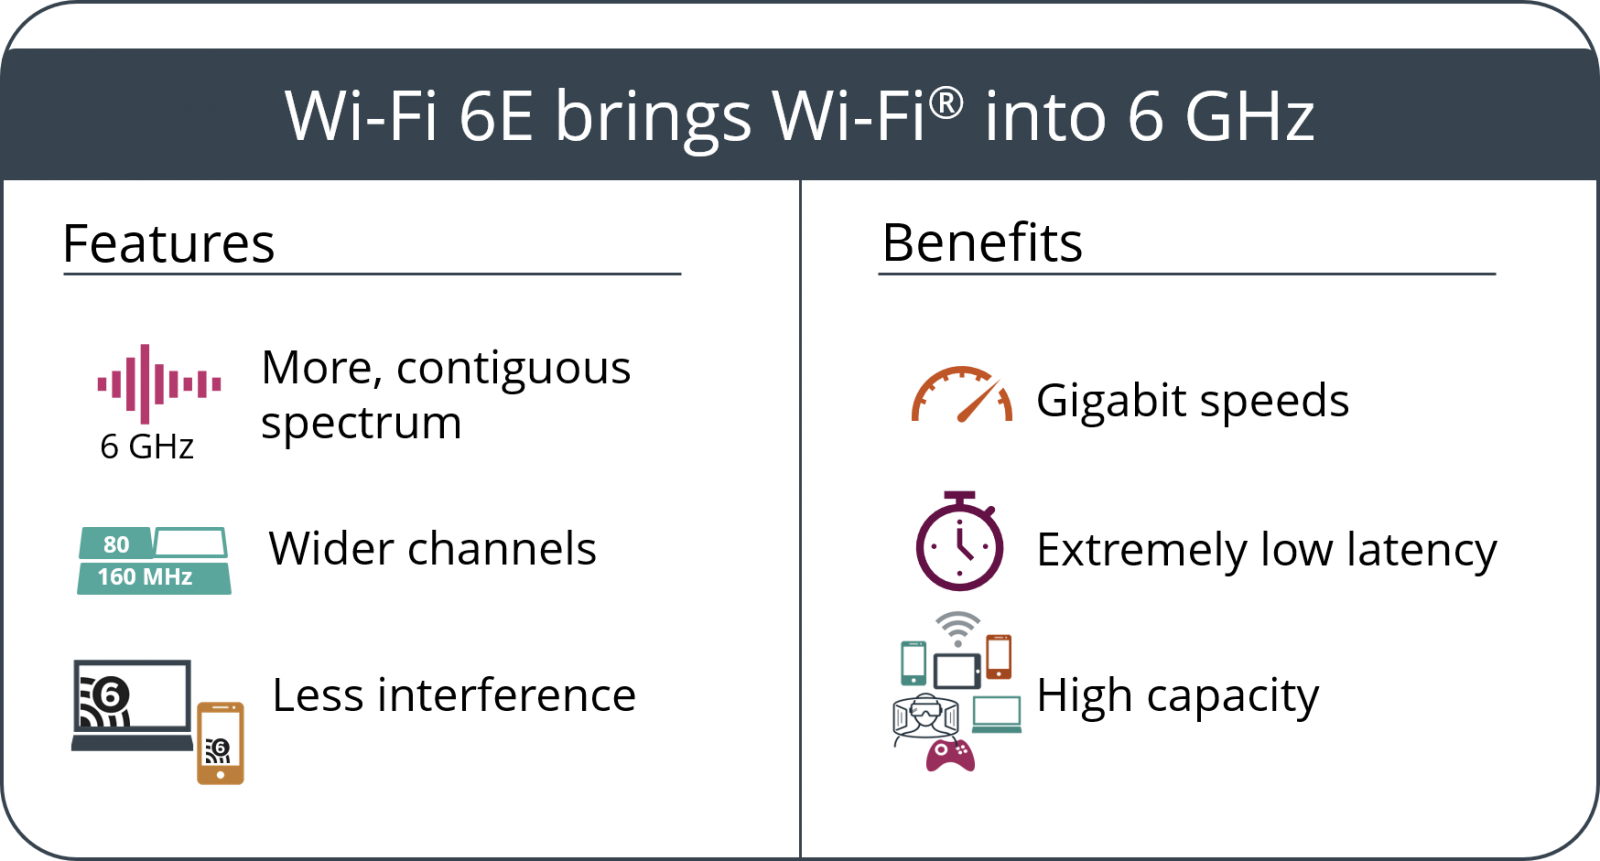 Wi-Fi 6 features benefits